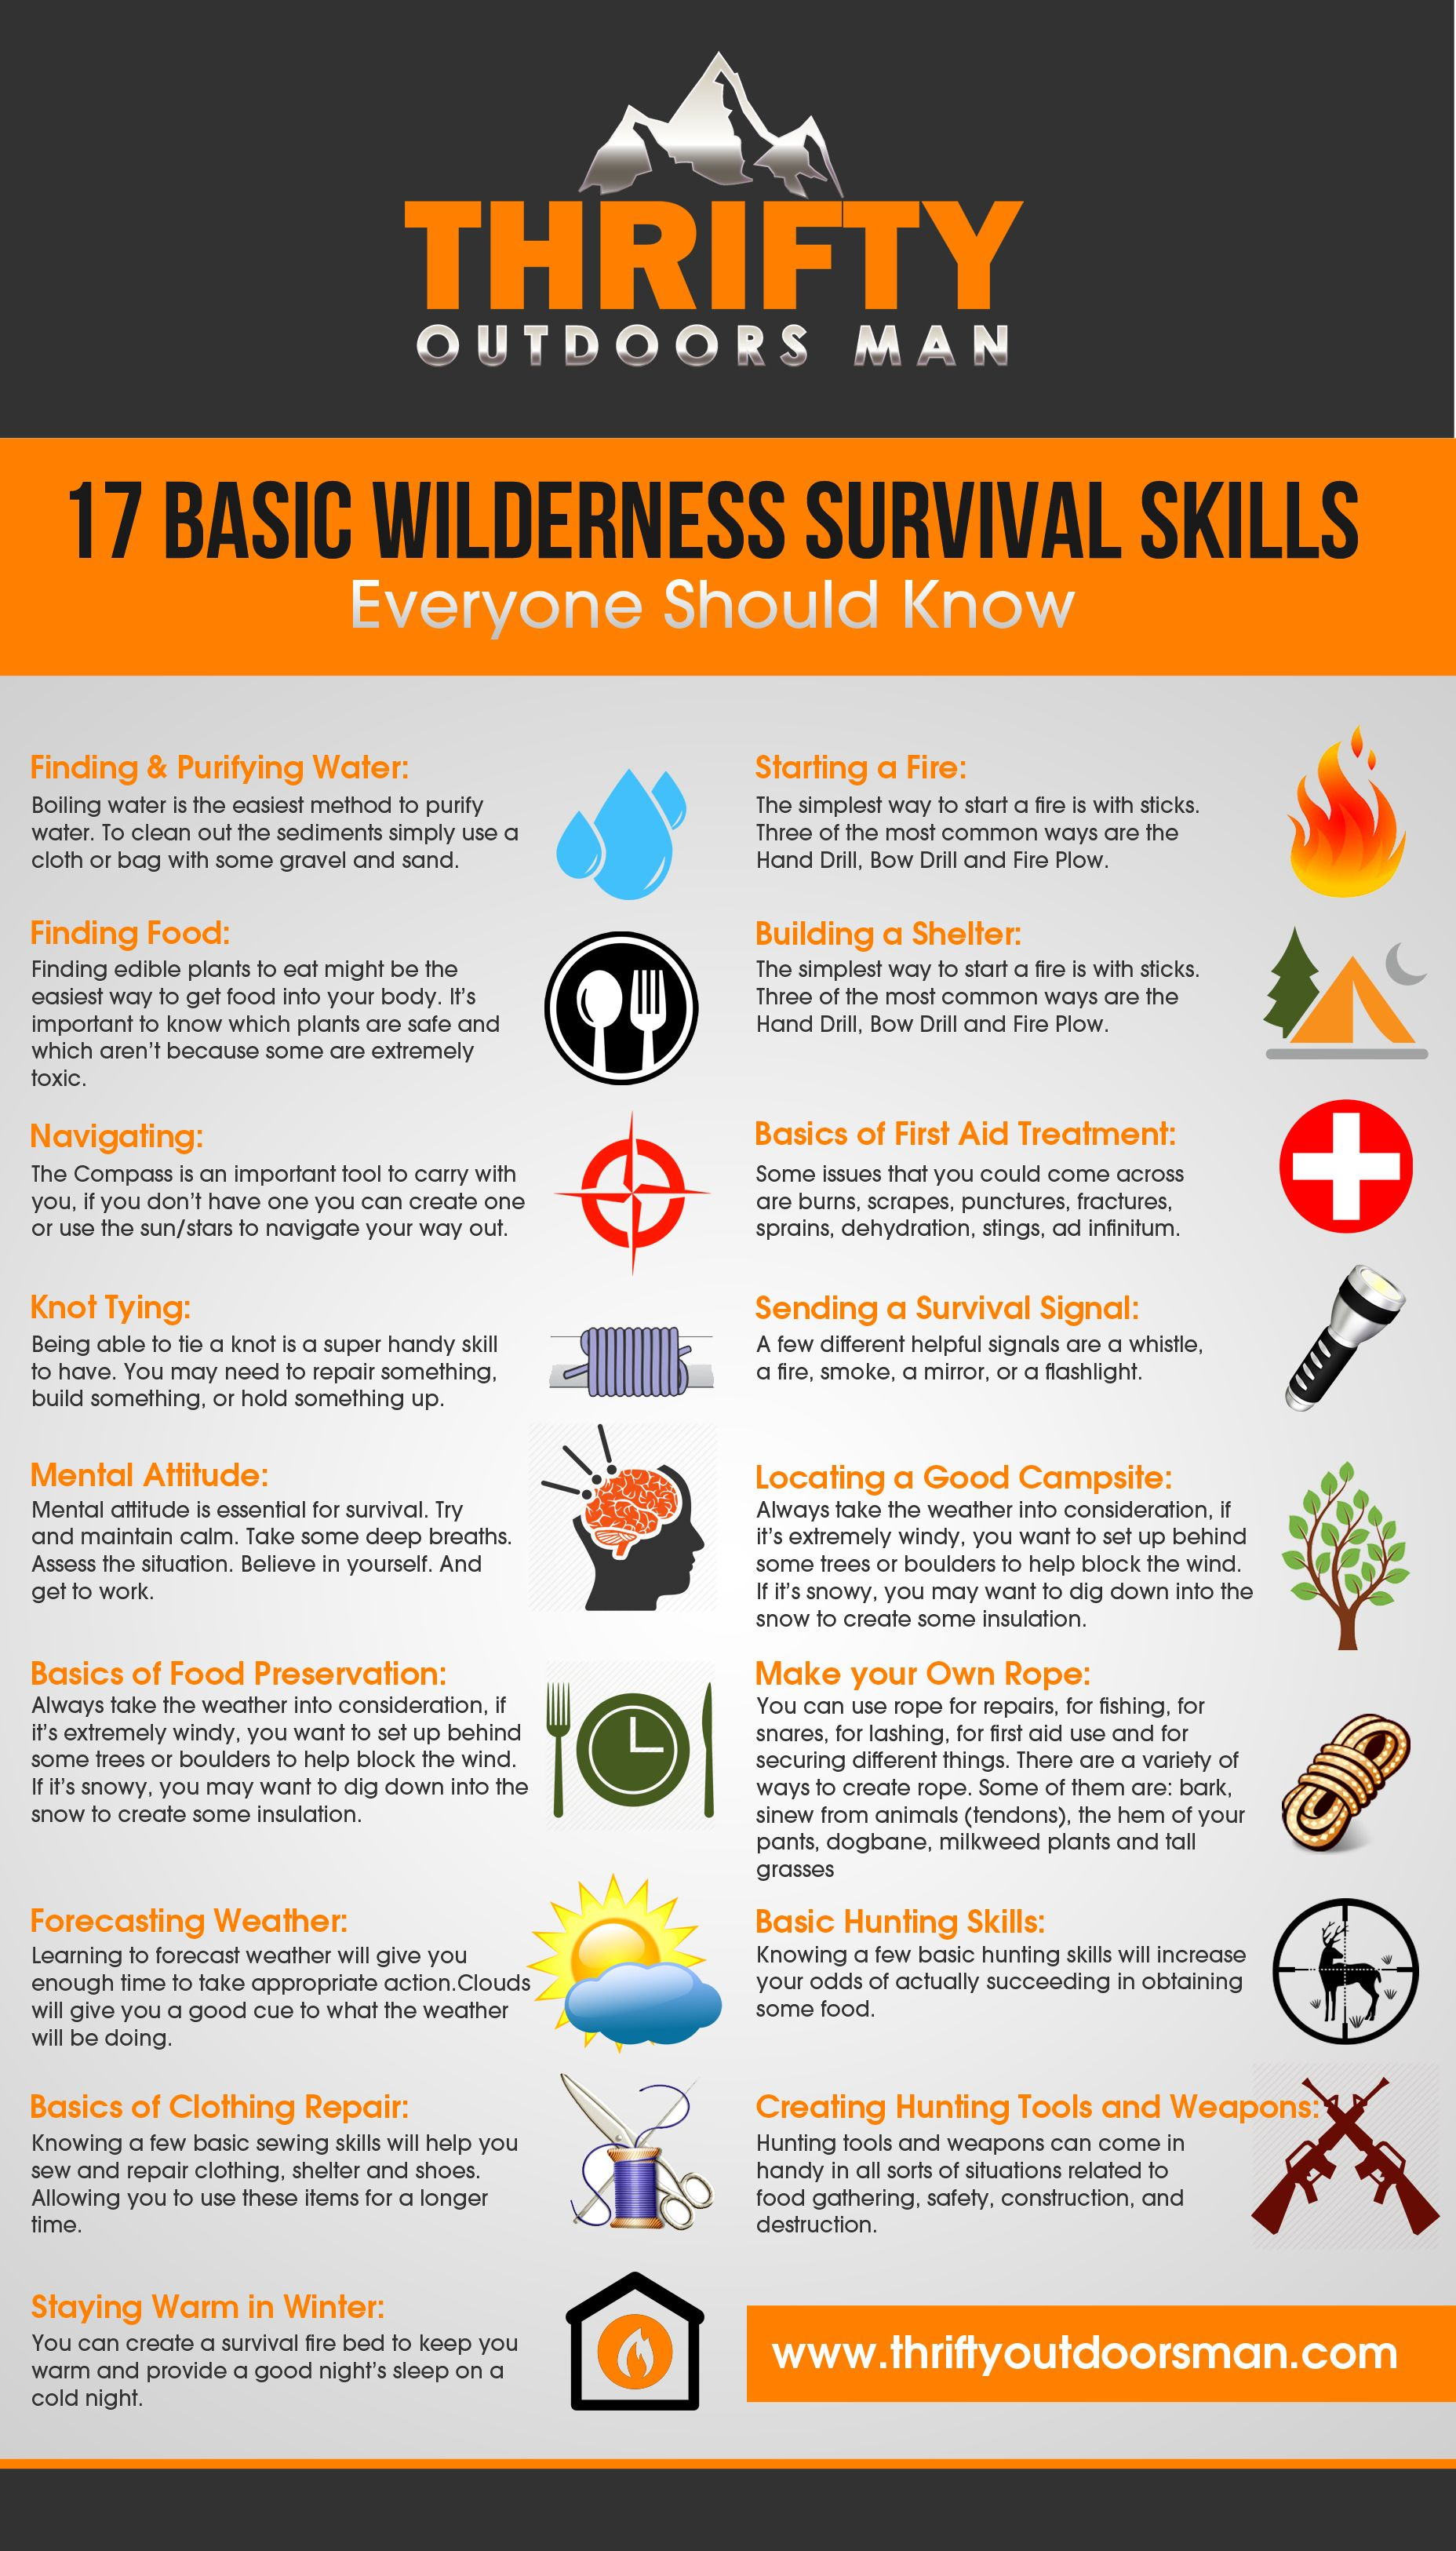 17 Basic Wilderness Survival Skills Everyone Should Know